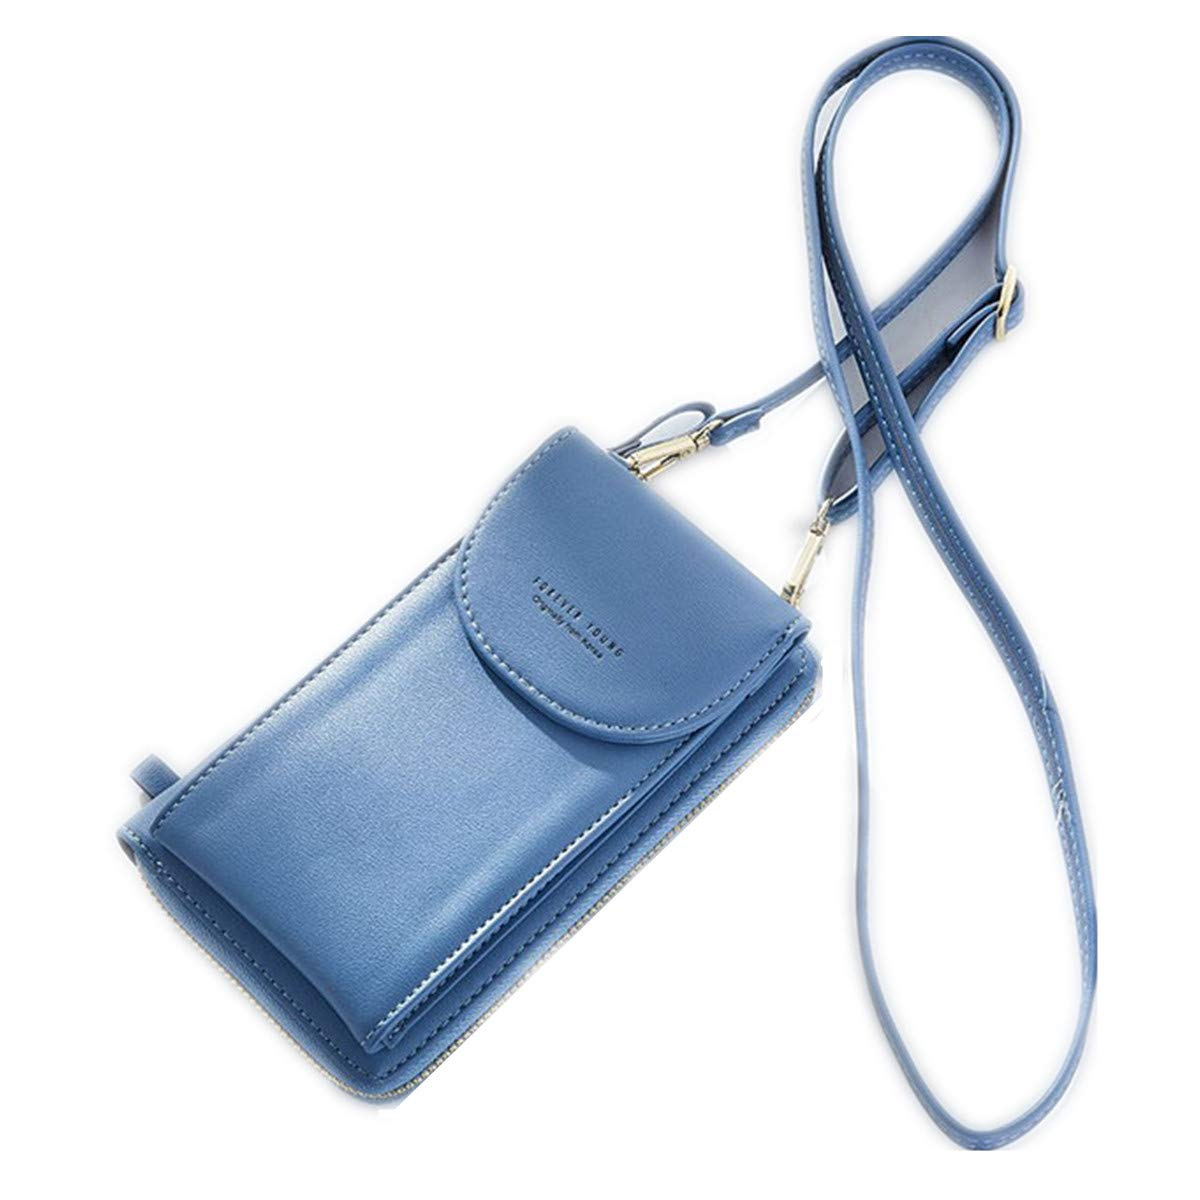 OURBAG Cellphone Wallet Purse Phone Pouch Wristlet Clutch Crossbody Shoulder Bag Blue